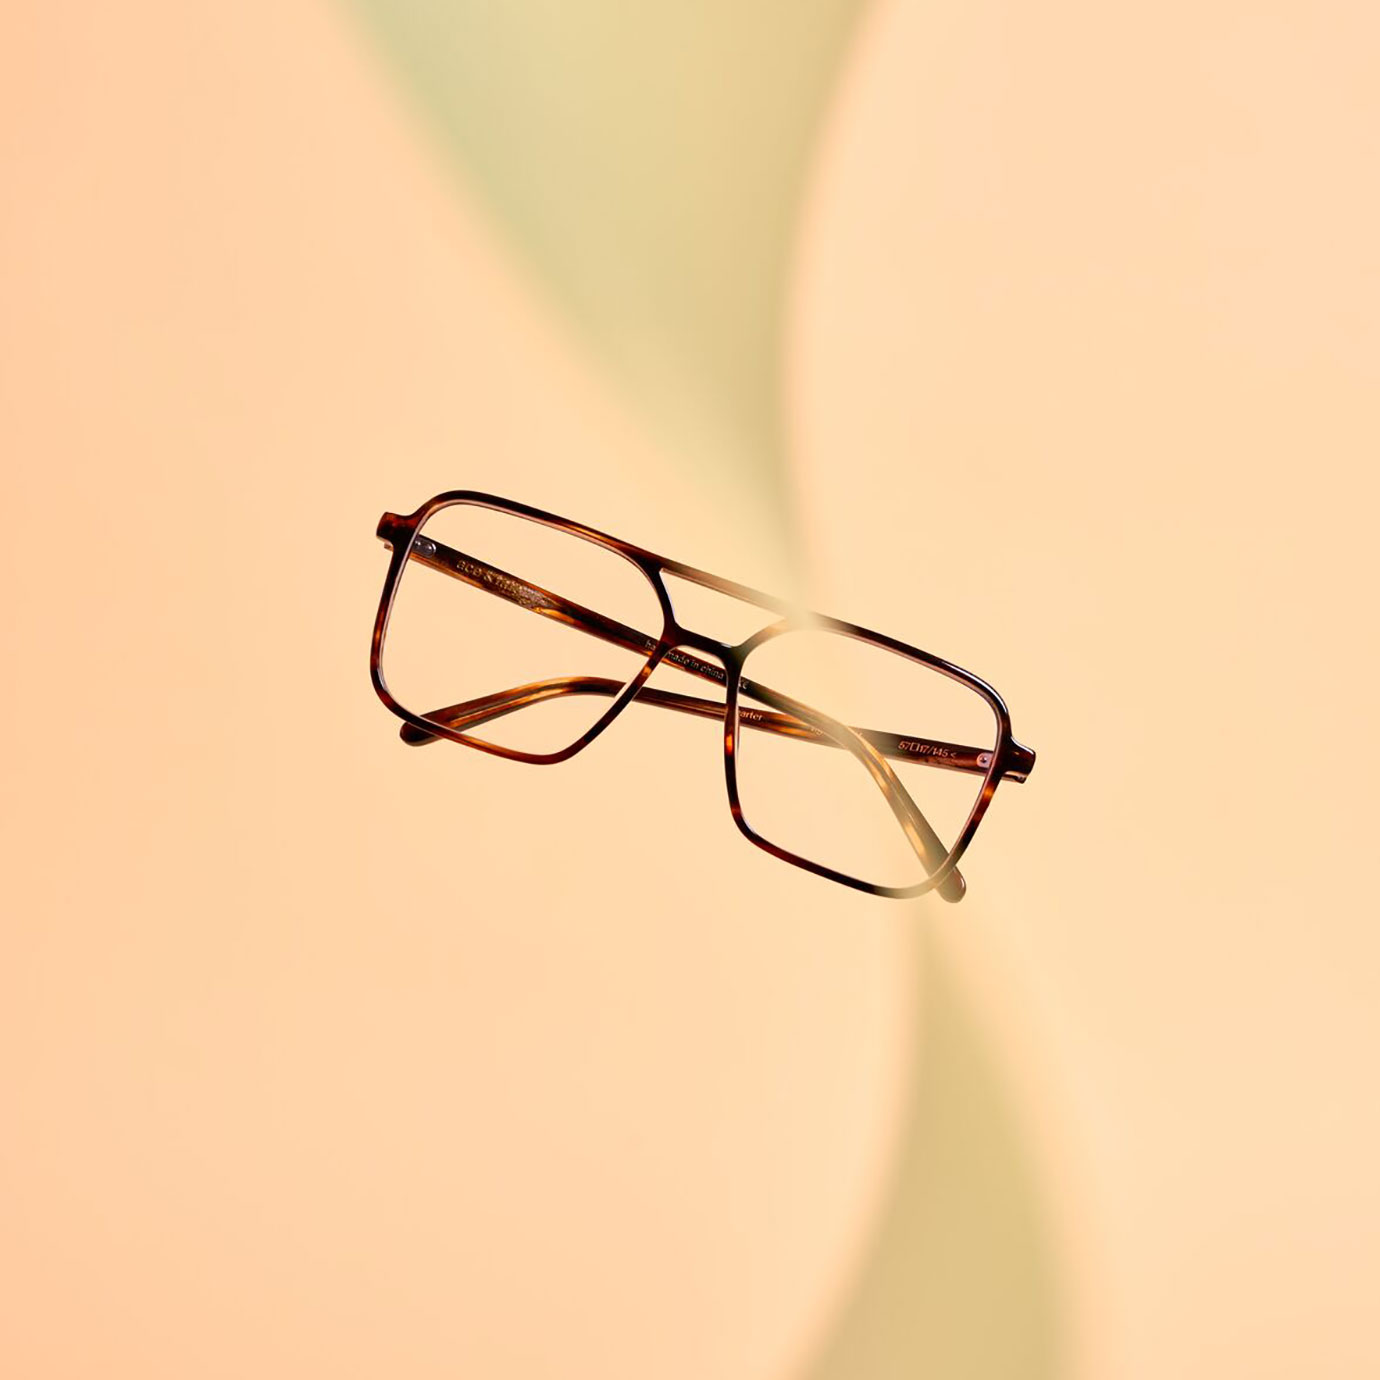 Glasses floating on a peach background.